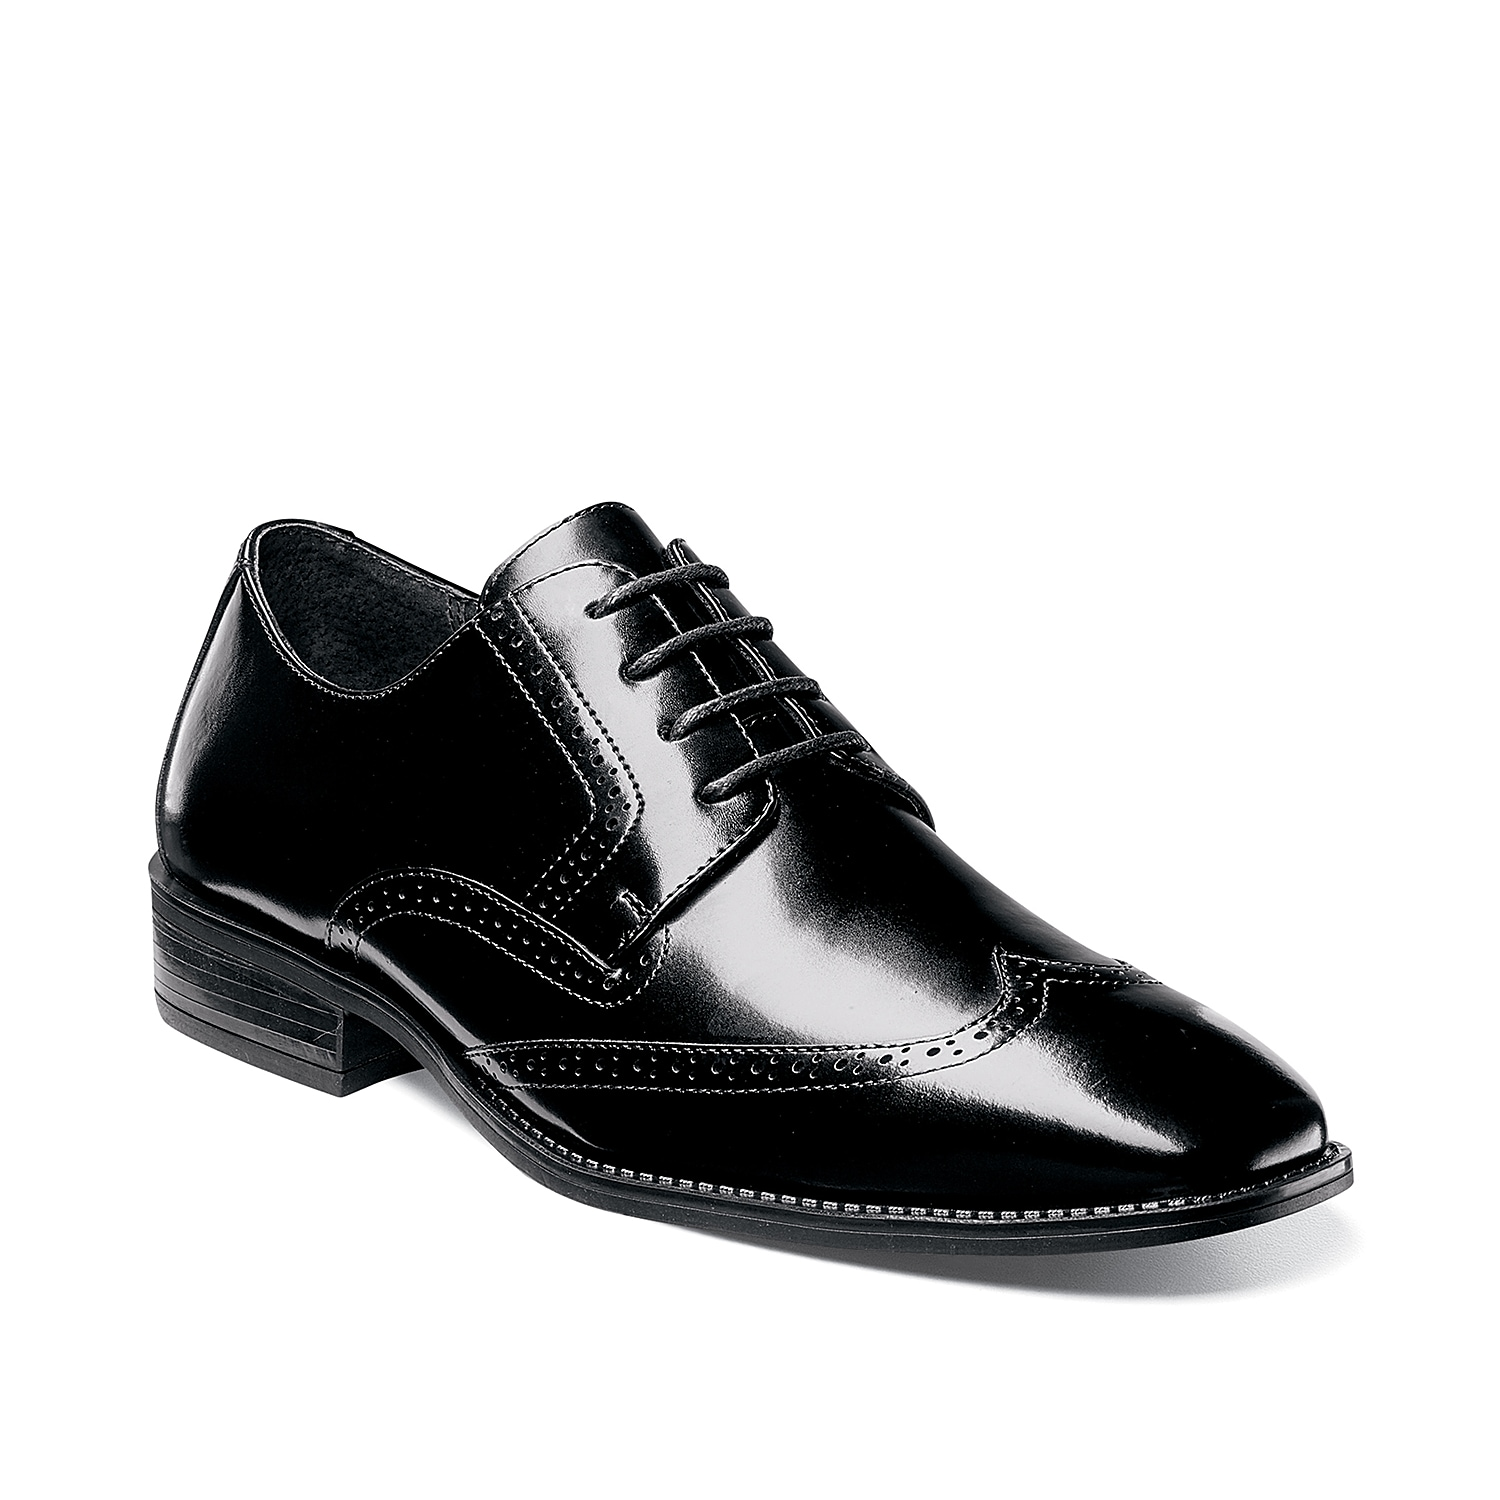 Add contemporary style to your wardrobe with the Adley wingtip oxford from Stacy Adams. This lace-up pair features smooth leather upper and perforated brogue accents for a dapper finishing touch!